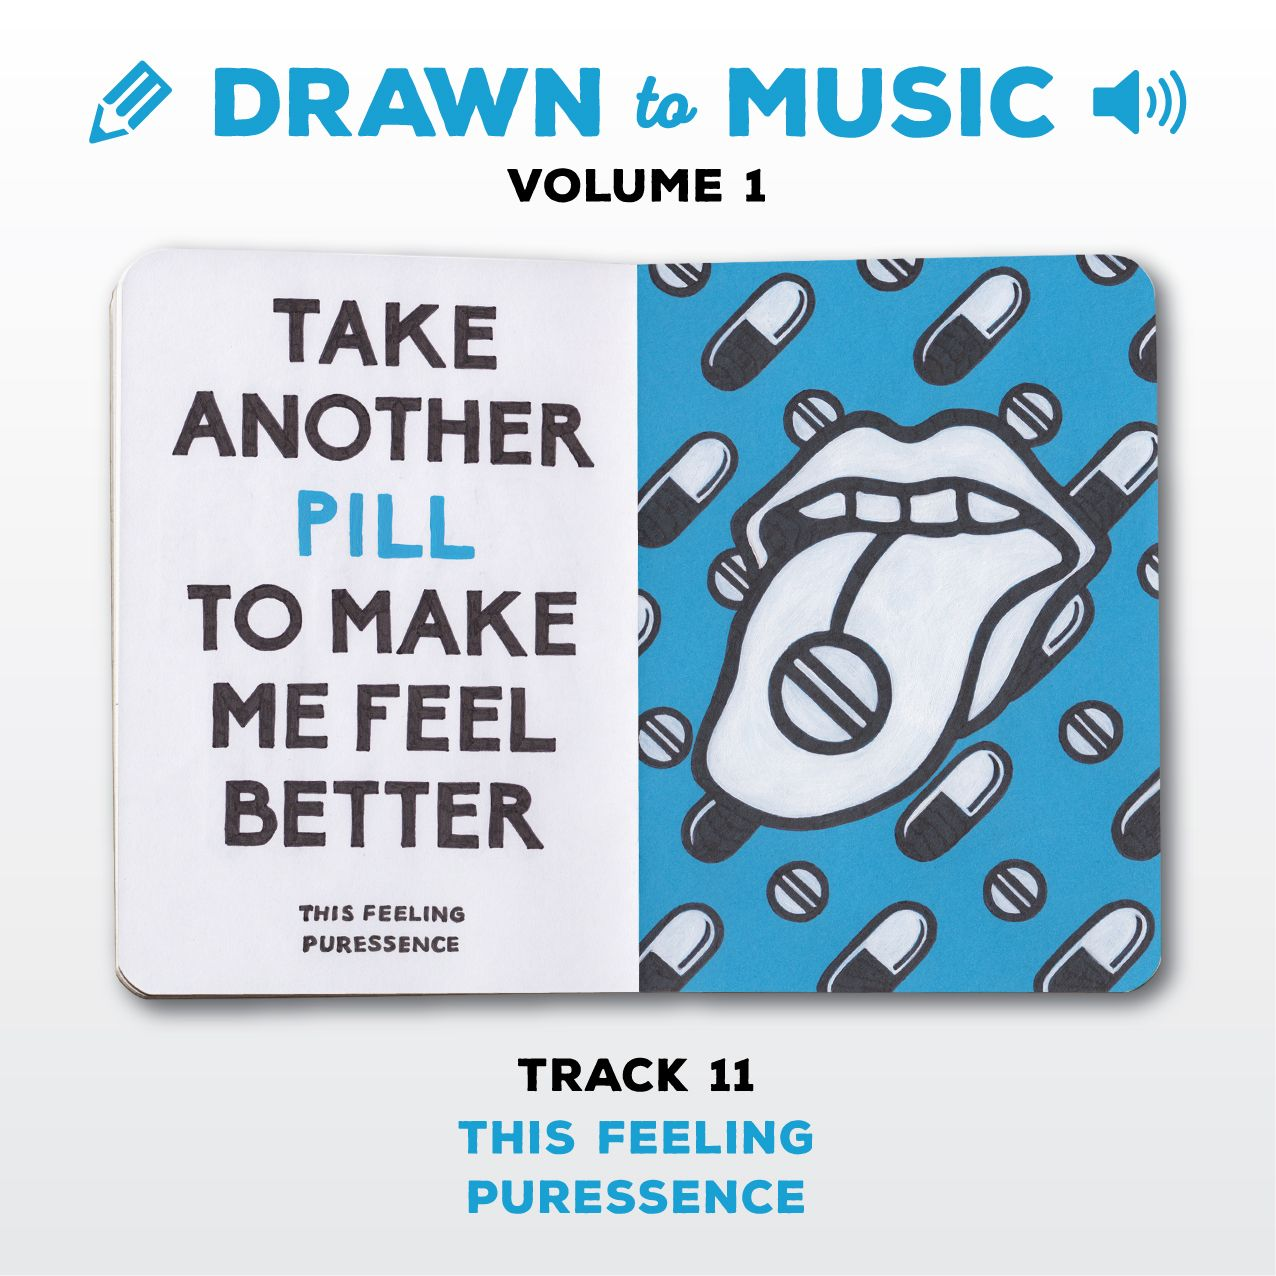 Drawn to Music - Volume 1 : Track 11 - This Feeling by Puressence #sketchbookproject2017 #drawntomusic #volume1 #S164511 #halfandhalf #blackwhiteandblue #thisfeeling #puressence